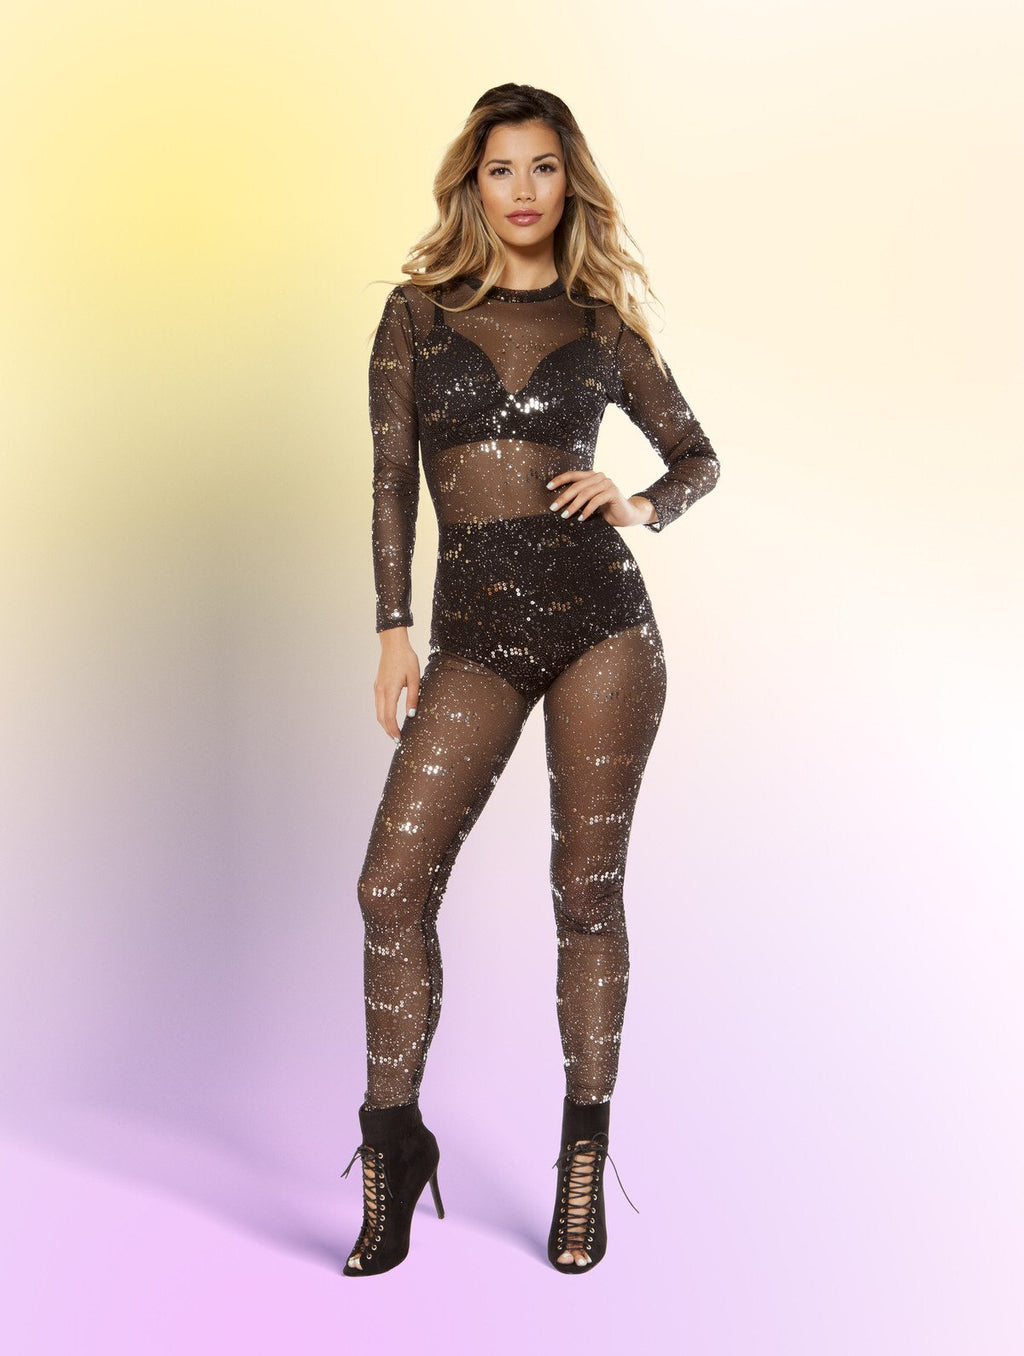 Glitter Sheer Mesh Jumpsuit (Curvy Sizes Available)